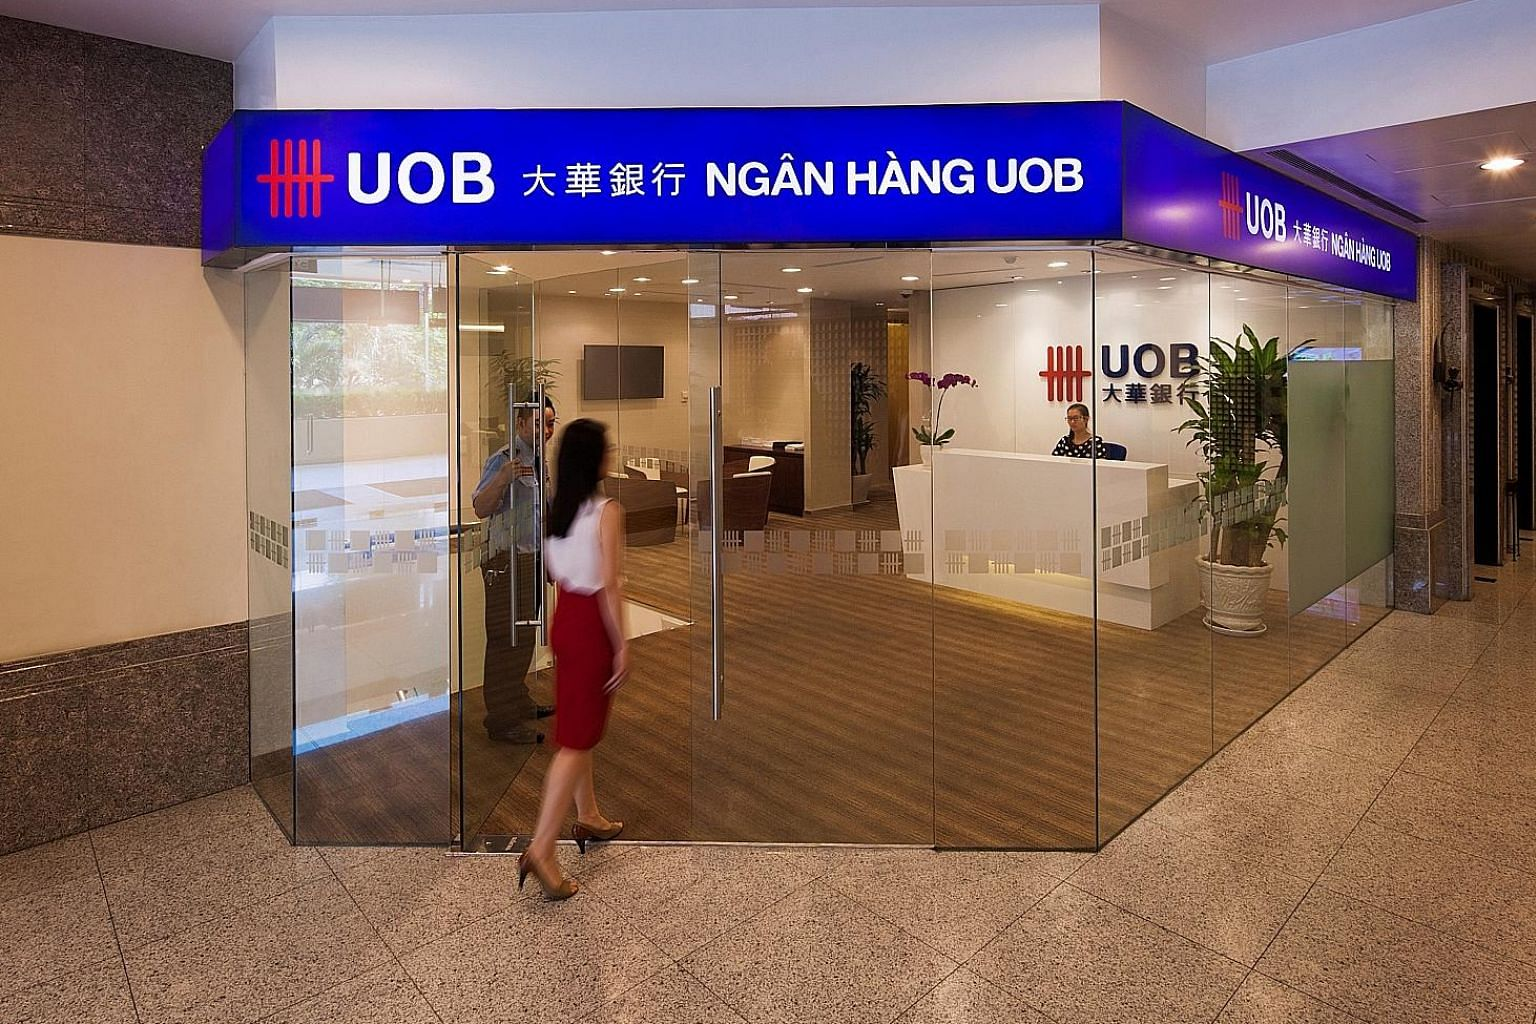 The foreign-owned subsidiary bank licence will enable UOB to extend its branch network beyond Ho Chi Minh City, and to offer its products and financial solutions to businesses and consumers in other cities.